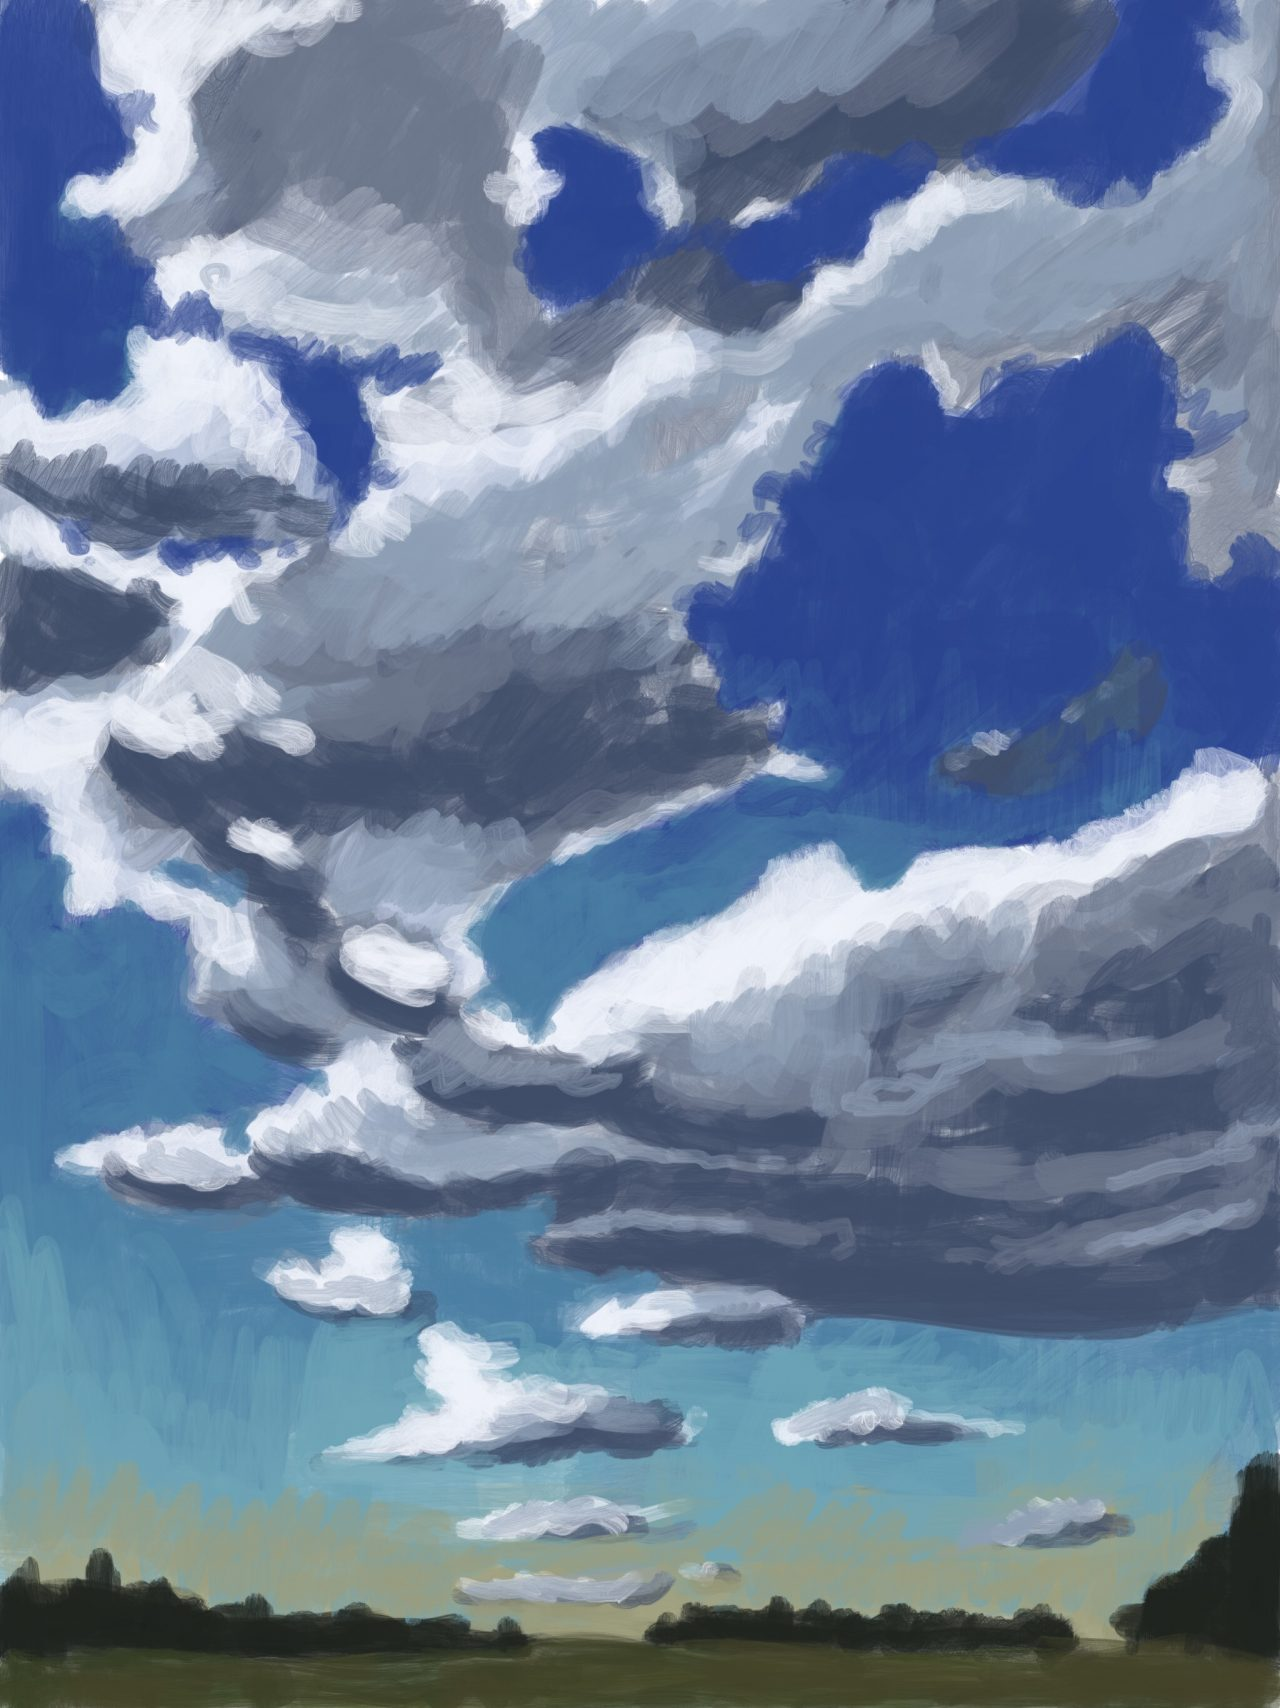 Painting of some clouds